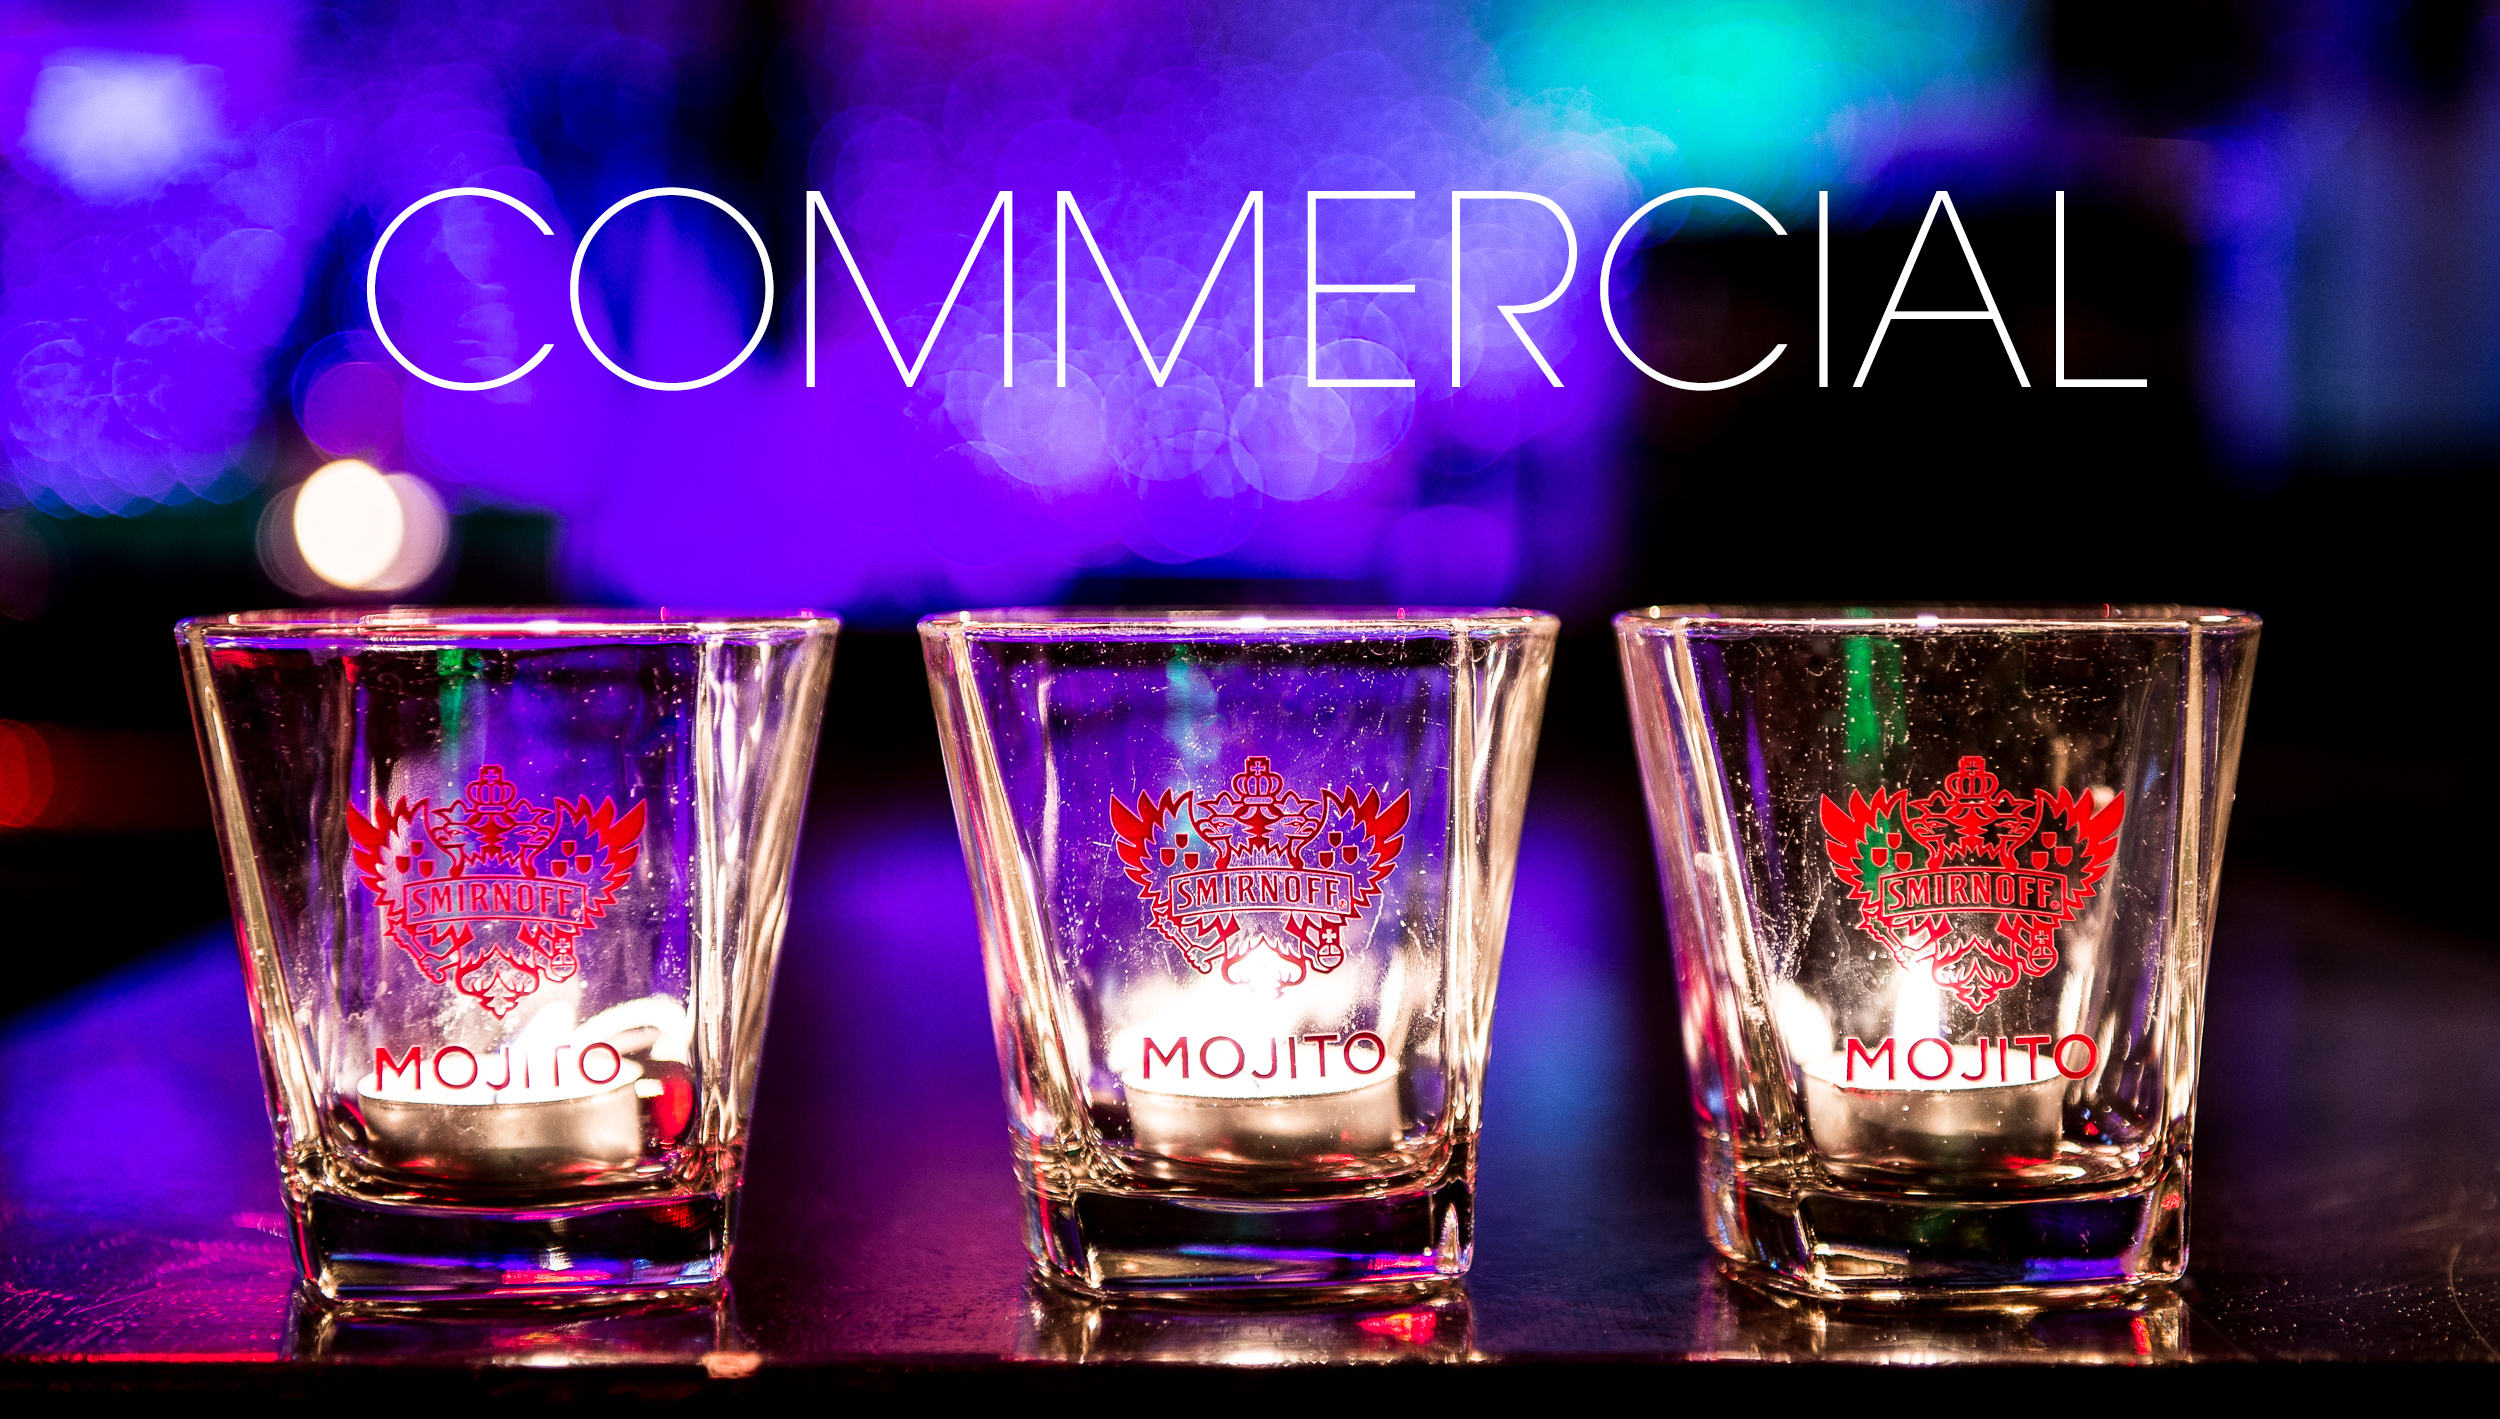 Comercial Photography